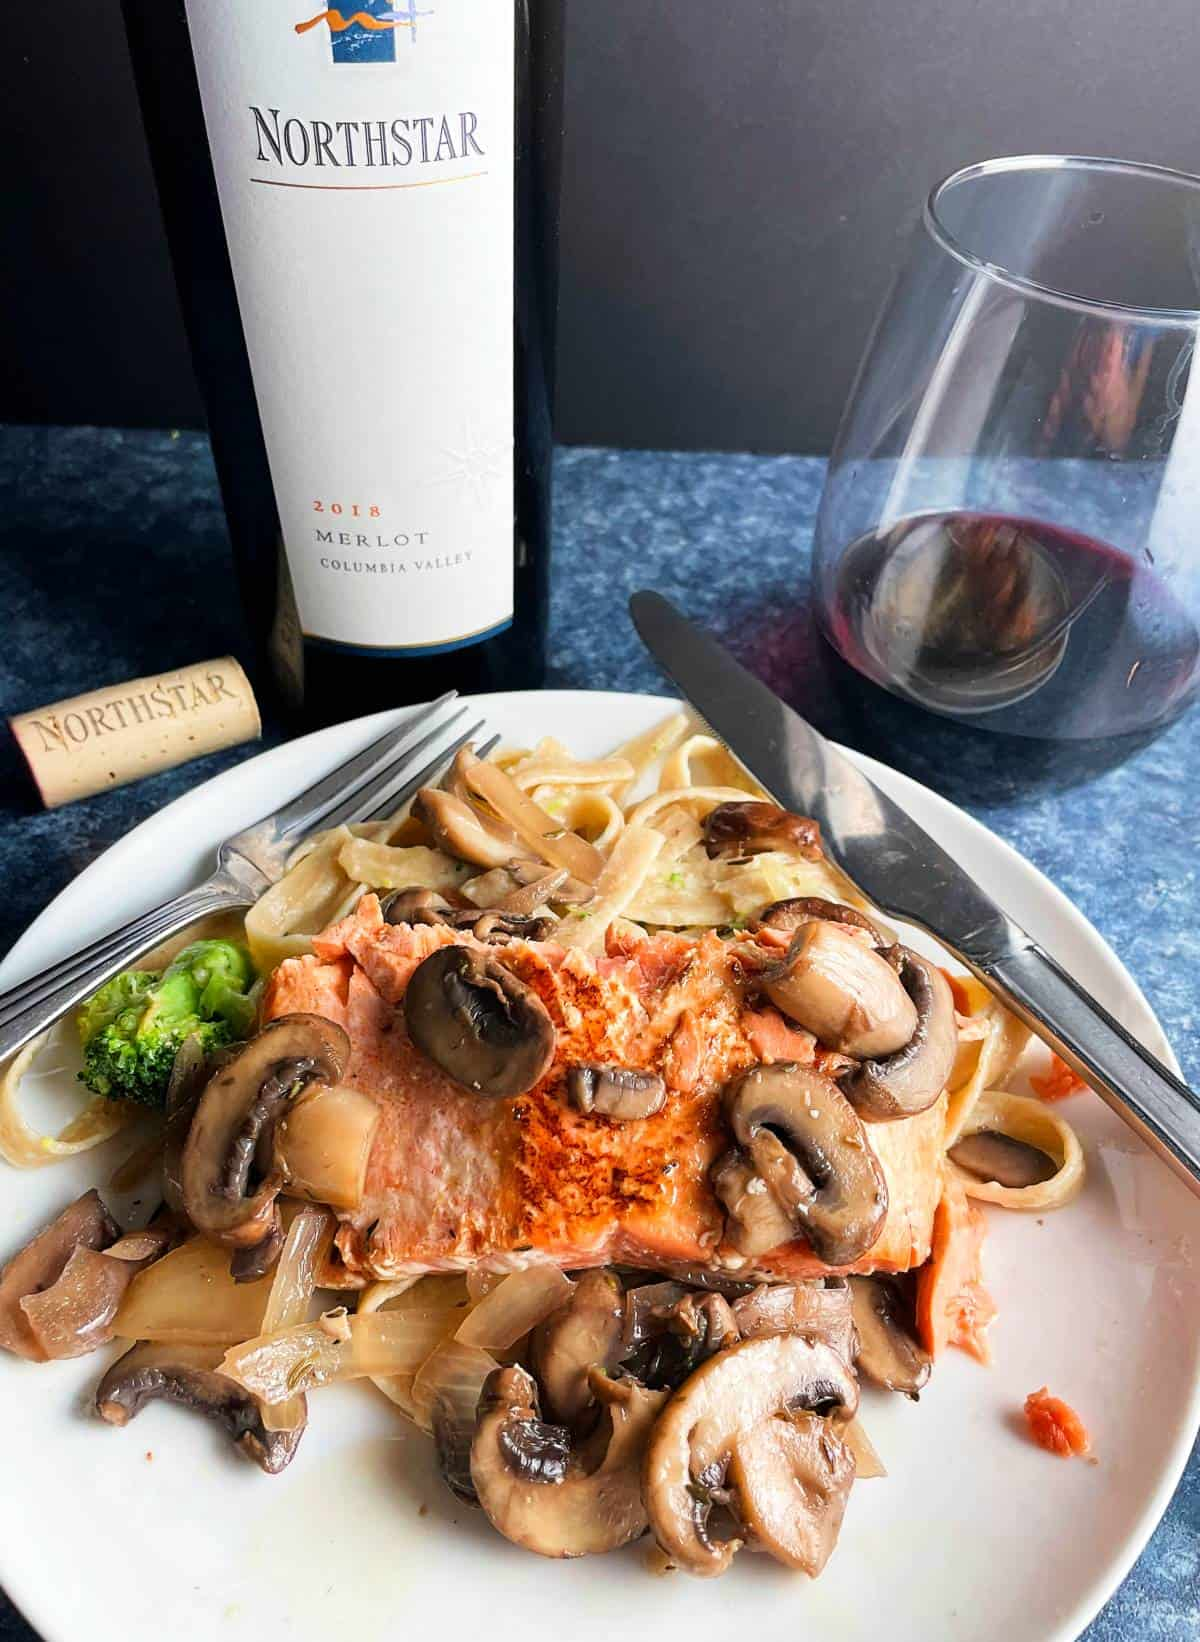 seared salmon topped with mushrooms, served with fettuccine. Glass and bottle of Merlot red wine in the background.